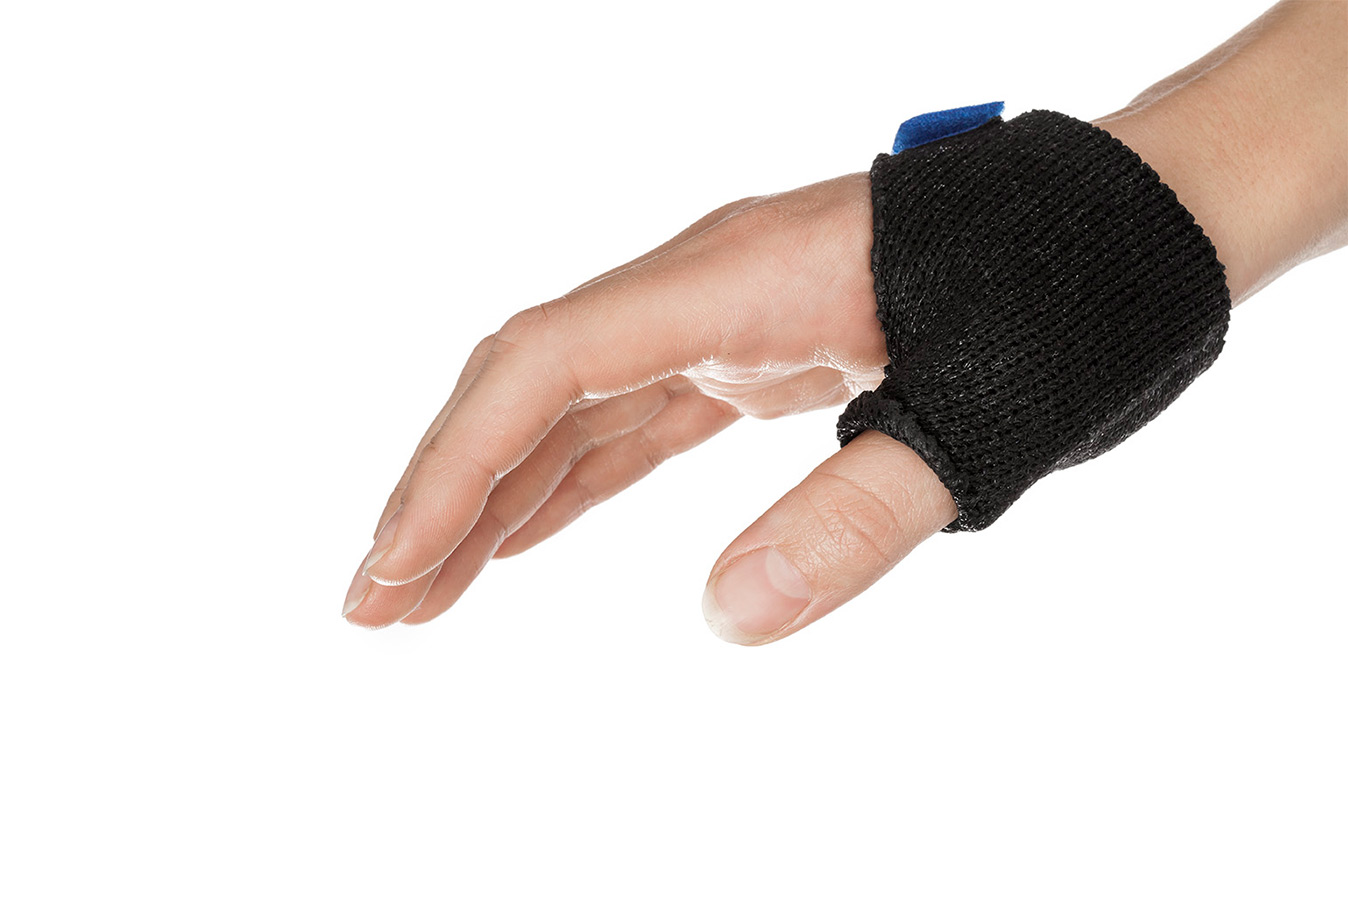 Hand with a thumb immobilization orthosis for arthritis in Orficast More Black